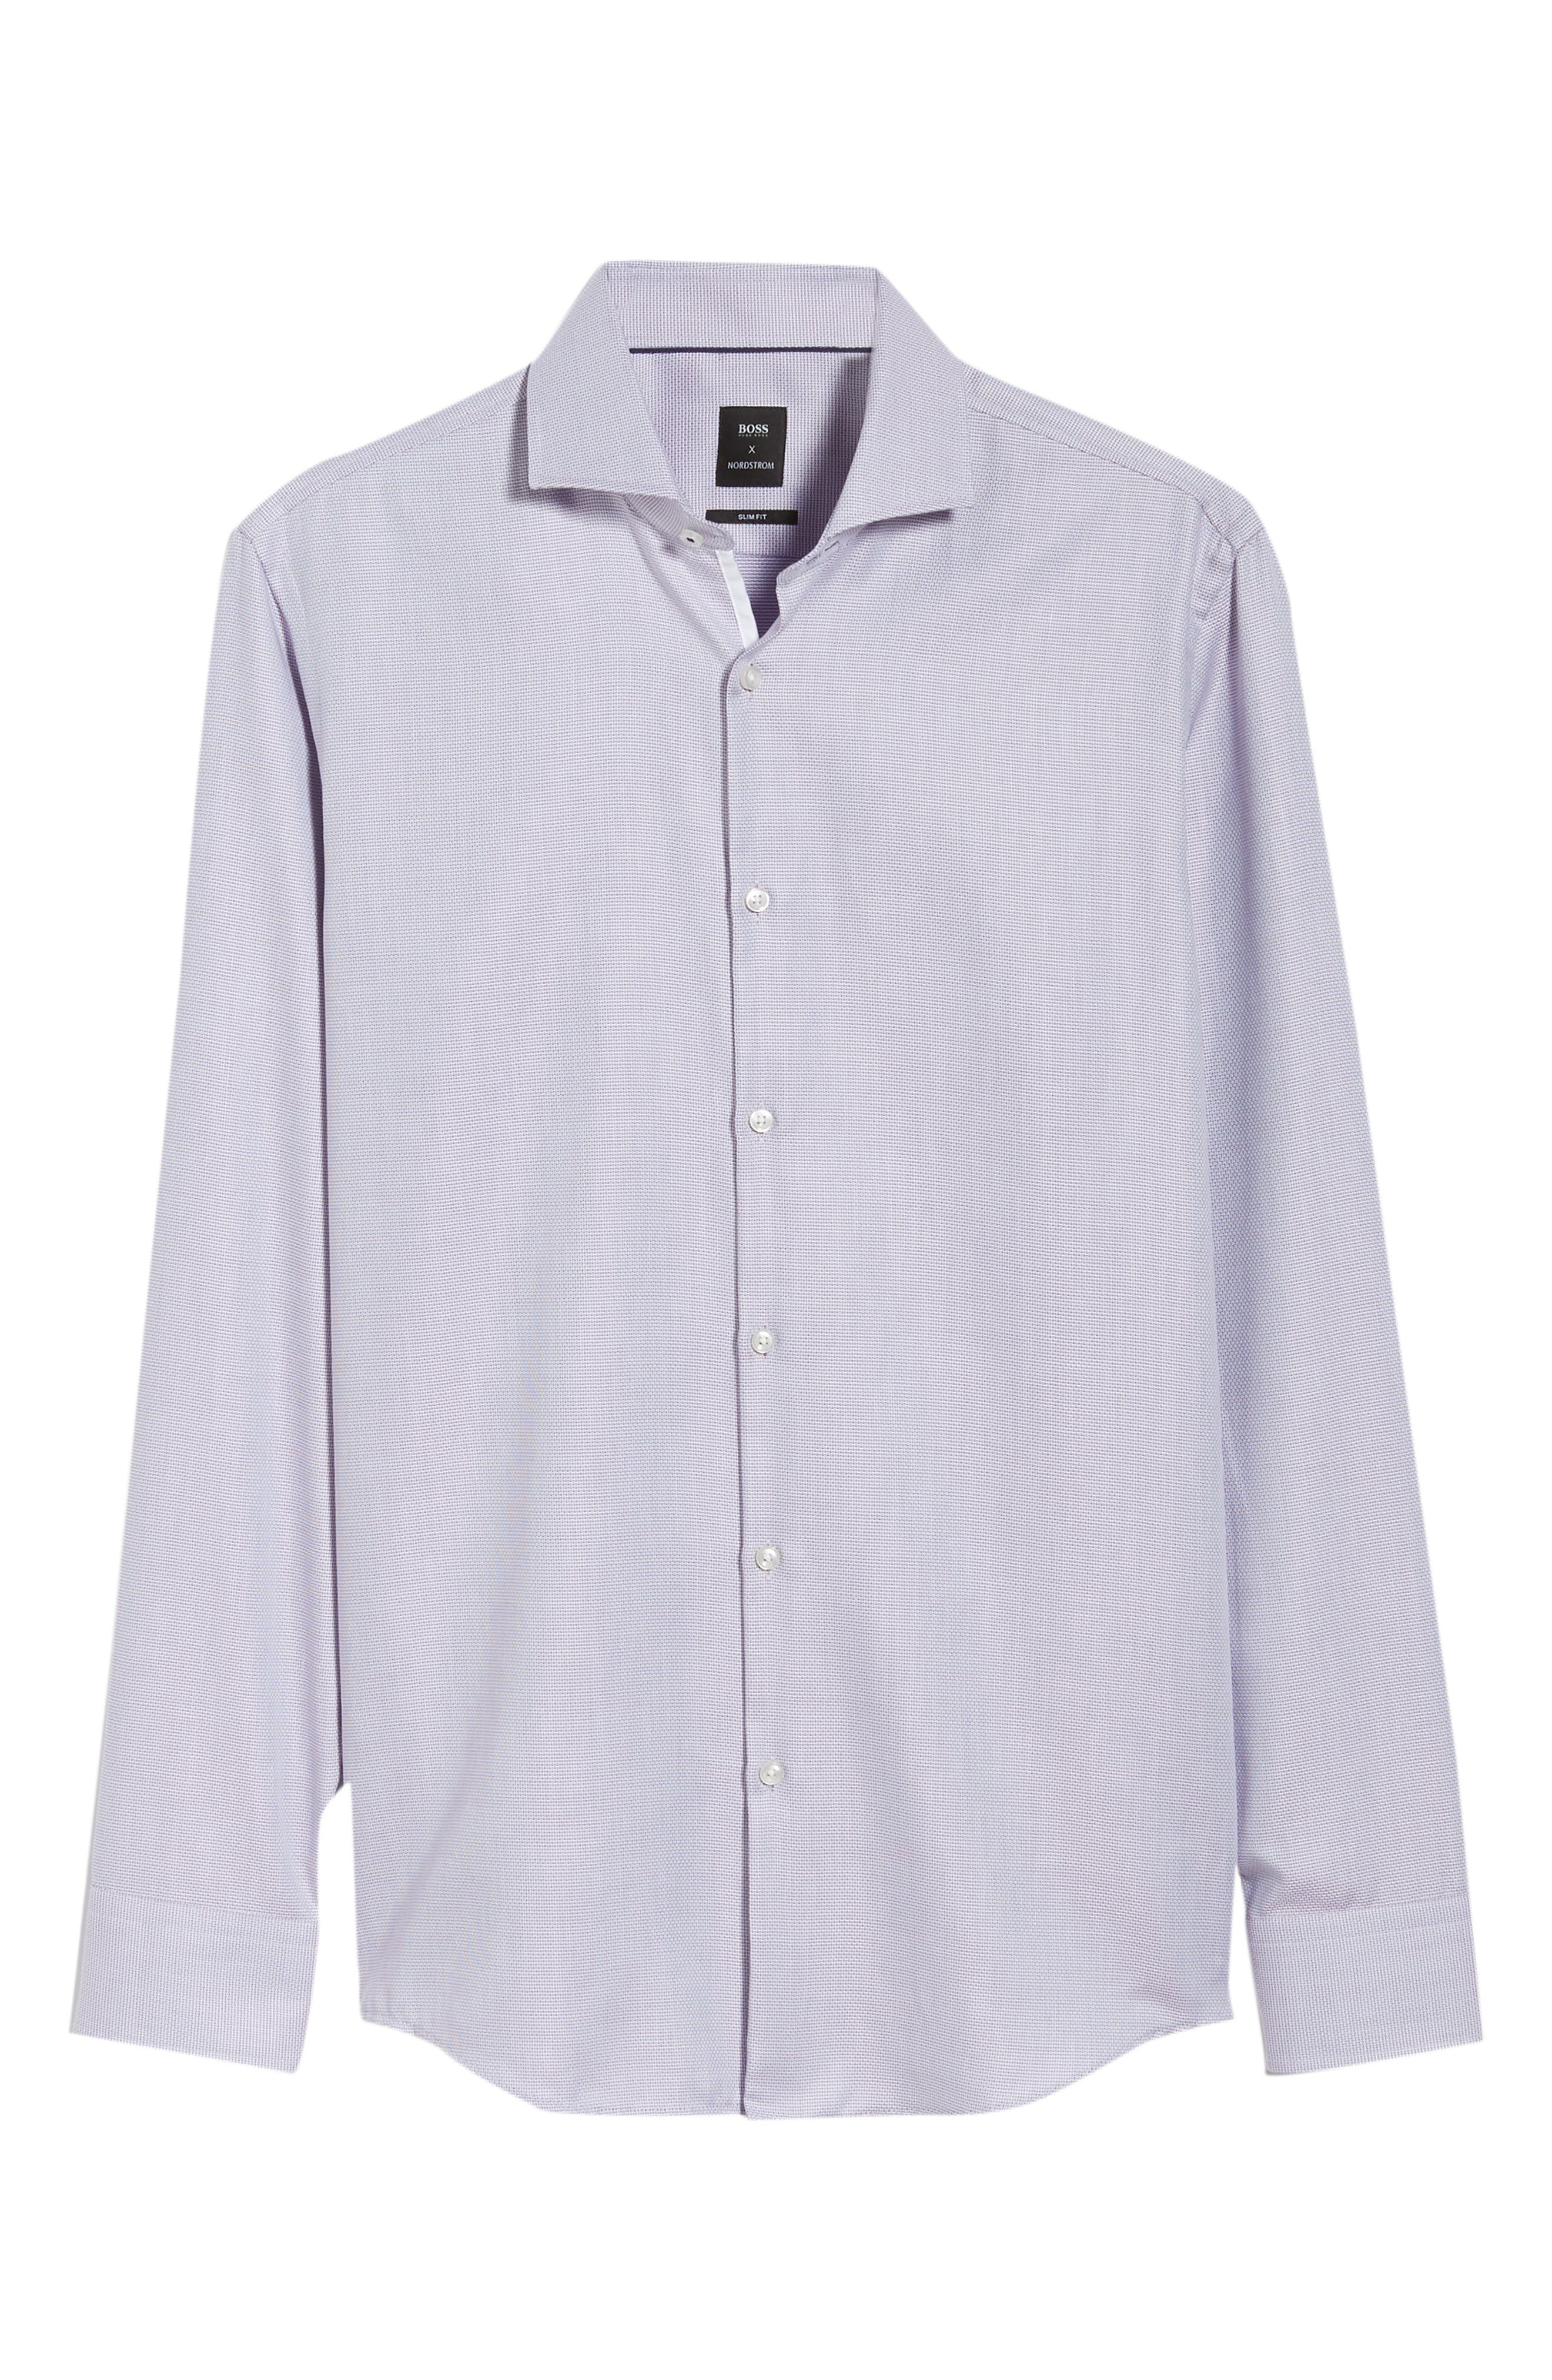 x Nordstrom Jerrin Slim Fit Solid Dress Shirt,                             Alternate thumbnail 5, color,                             RED